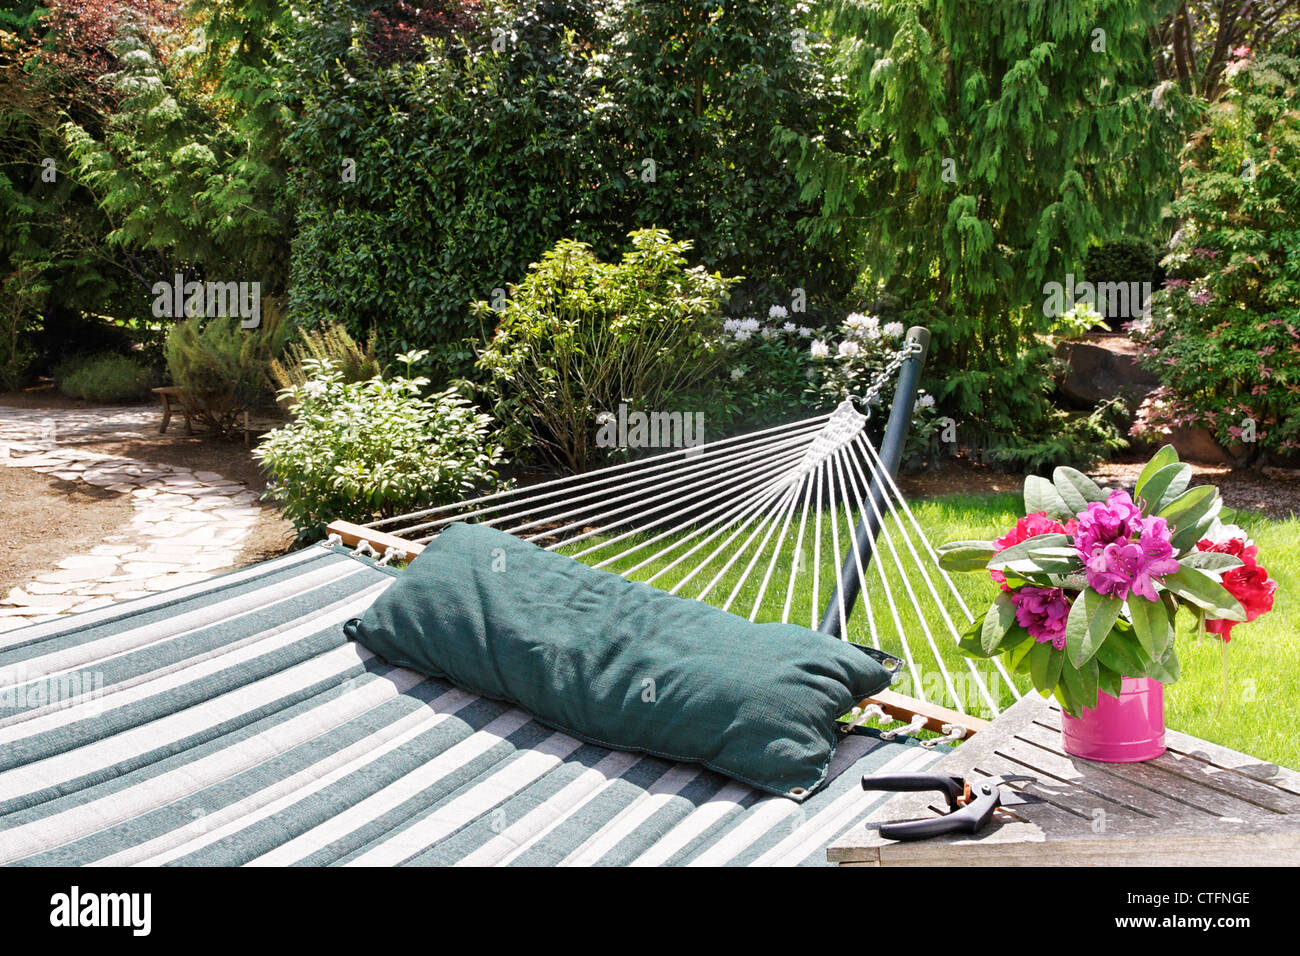 Relax And Enjoy The Garden After Cutting Some Flowers   Stock Image